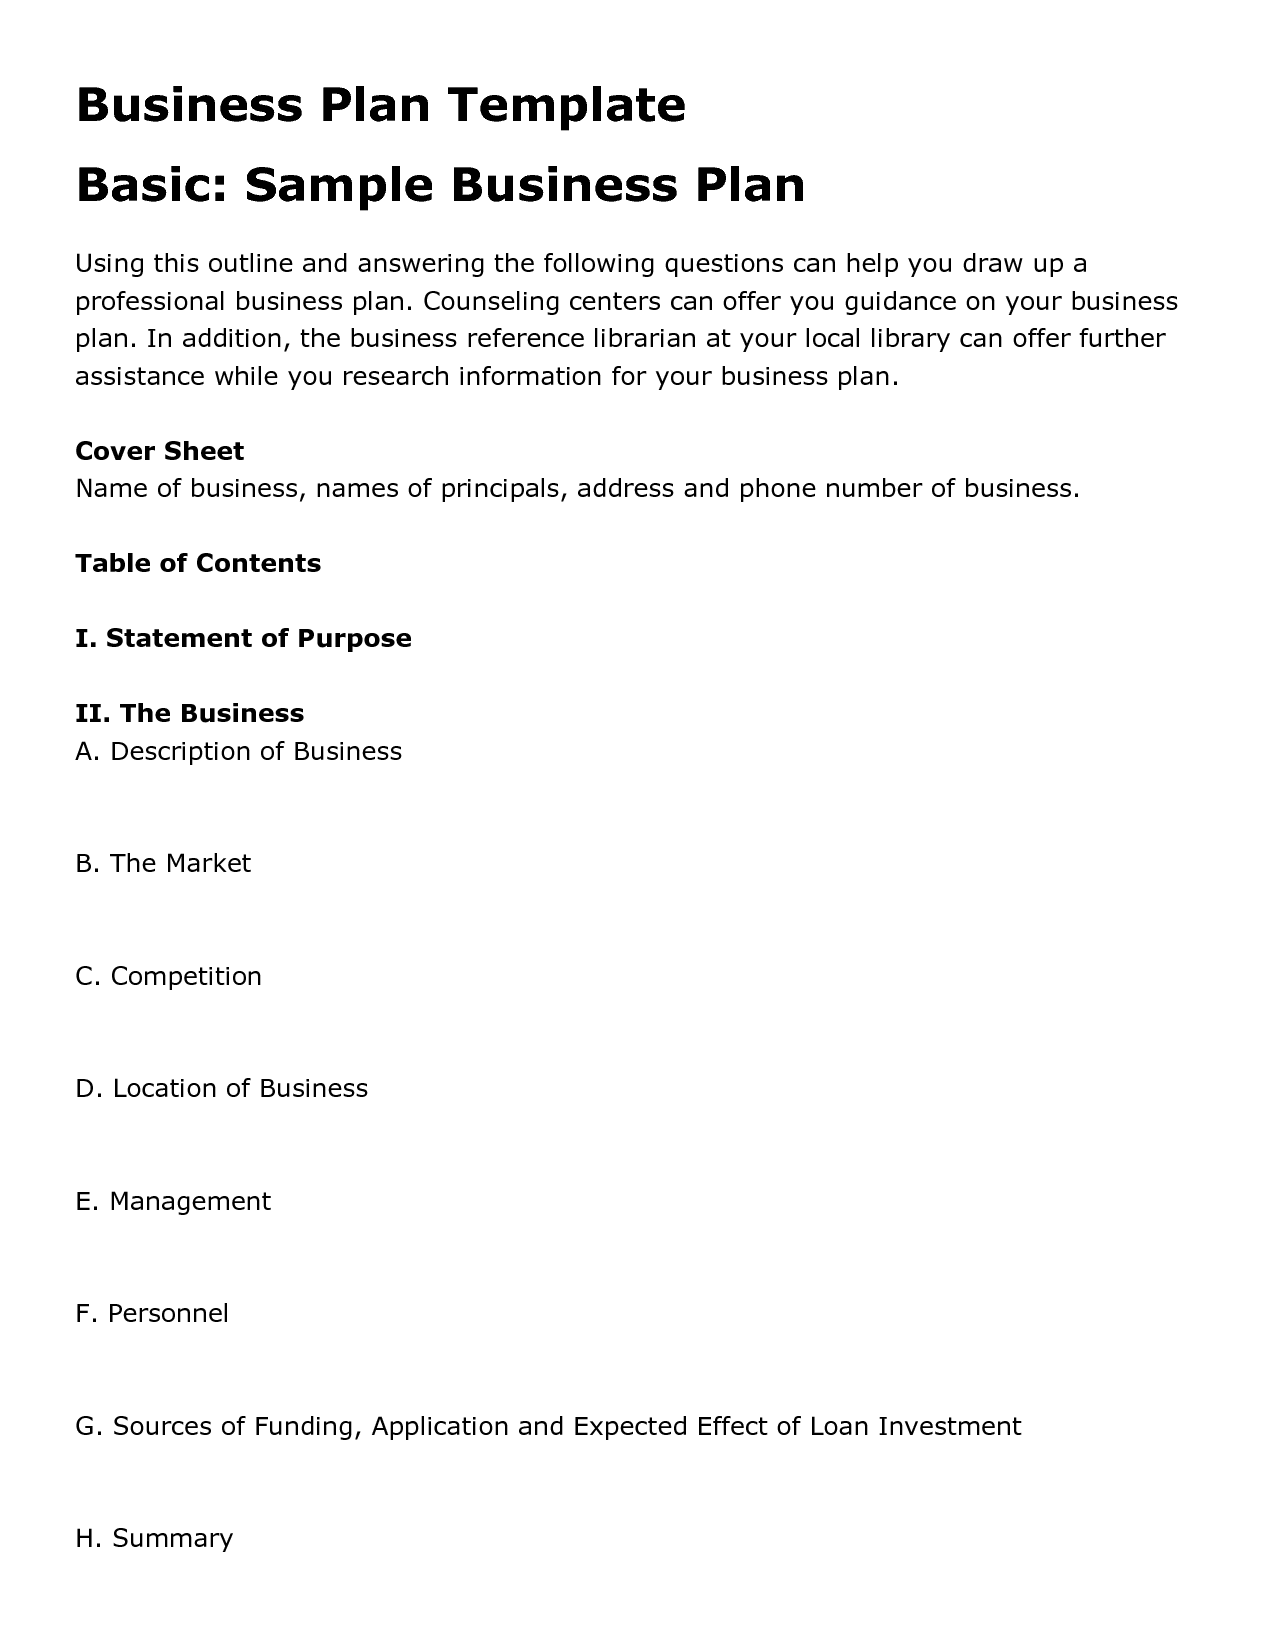 Sample Business Plan Template Samples